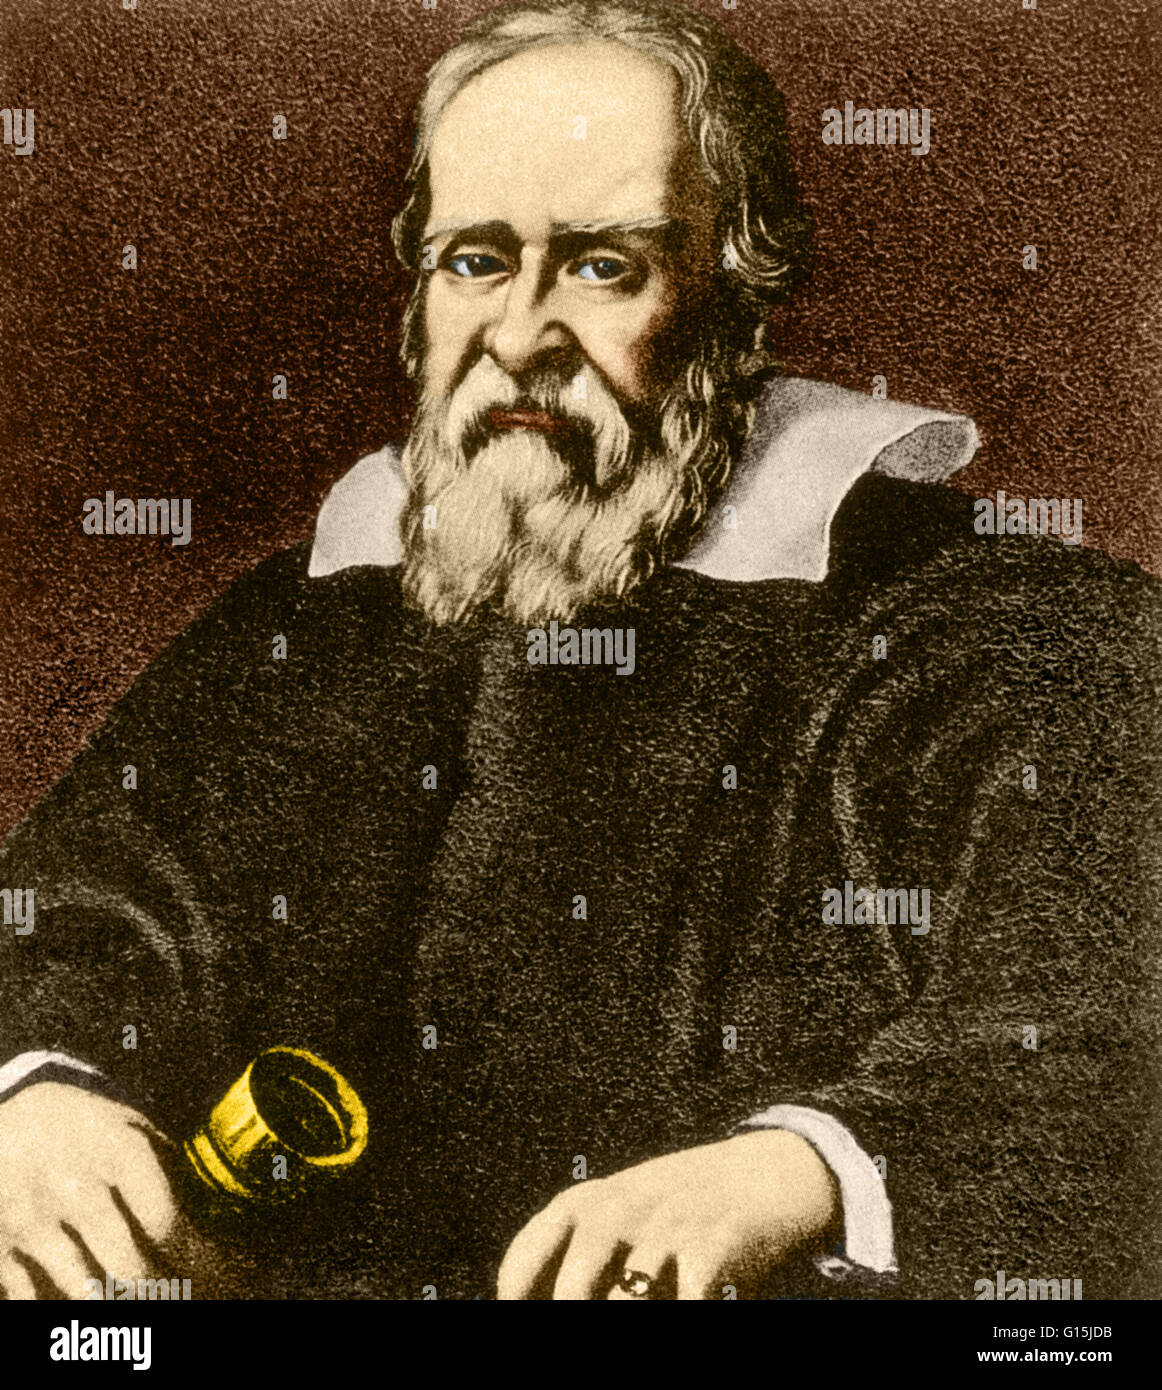 Galileo Galilei Major Achievements